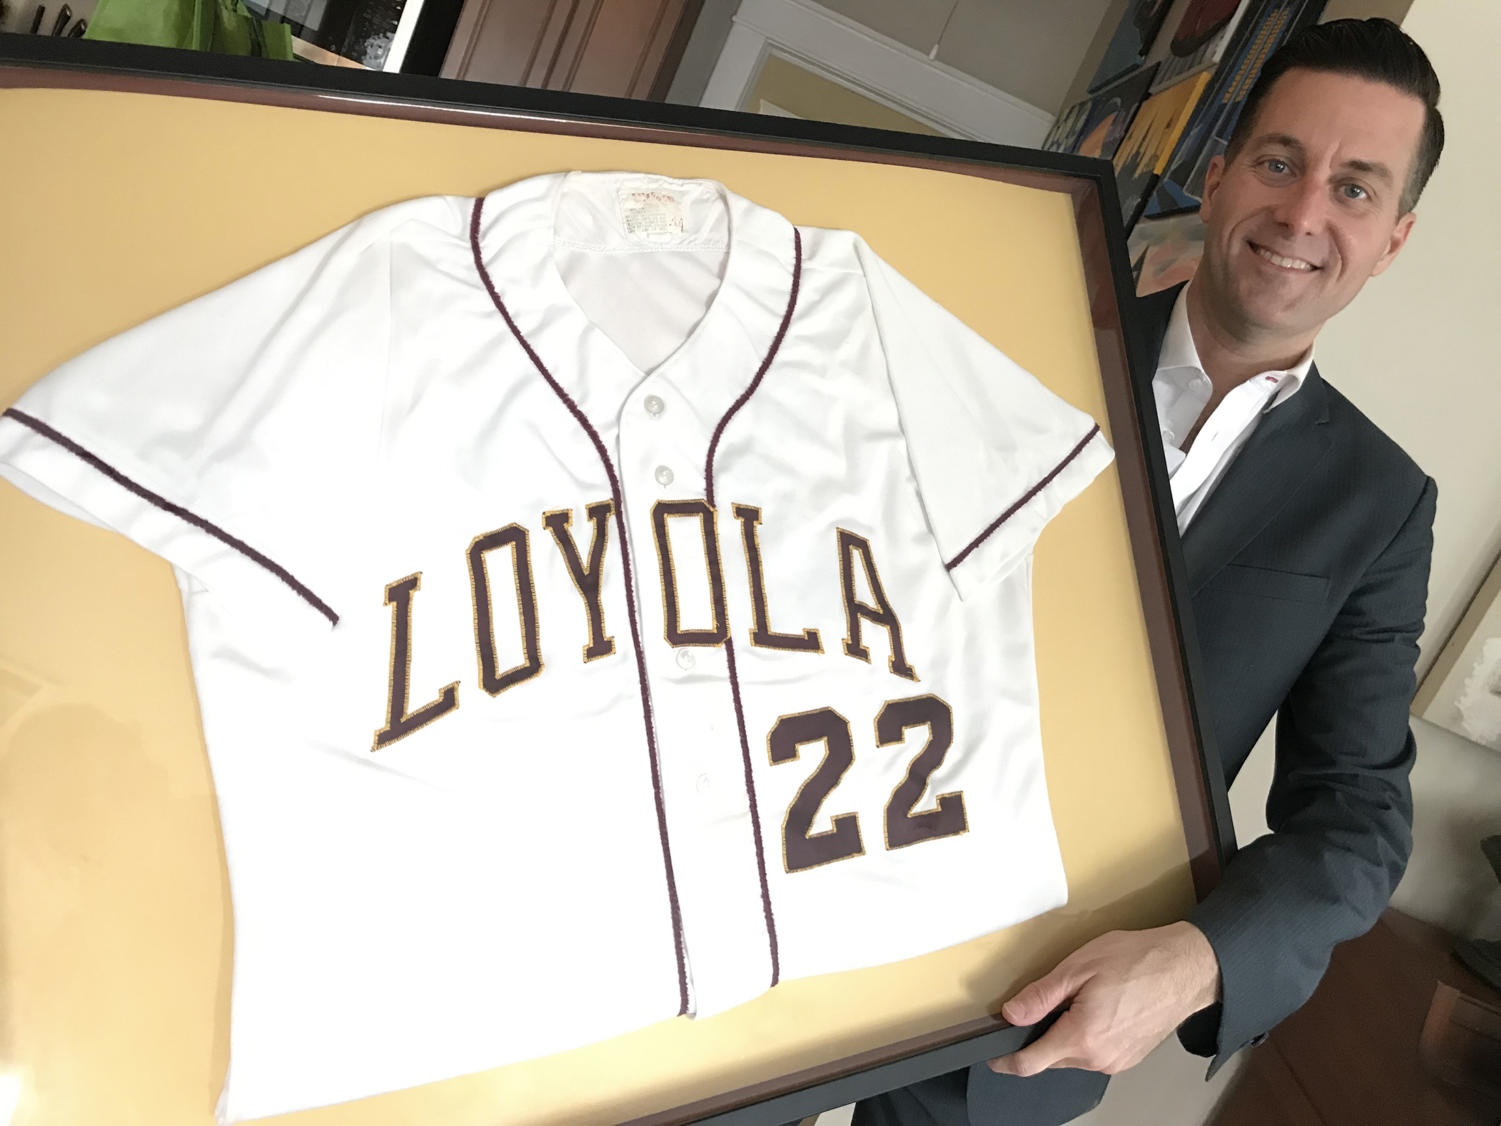 Fletcher Mackel poses with his framed Loyola jersey. He decided to frame his jersey after losing college memories during Hurricane Katrina. Courtesy of Fletcher Mackel.